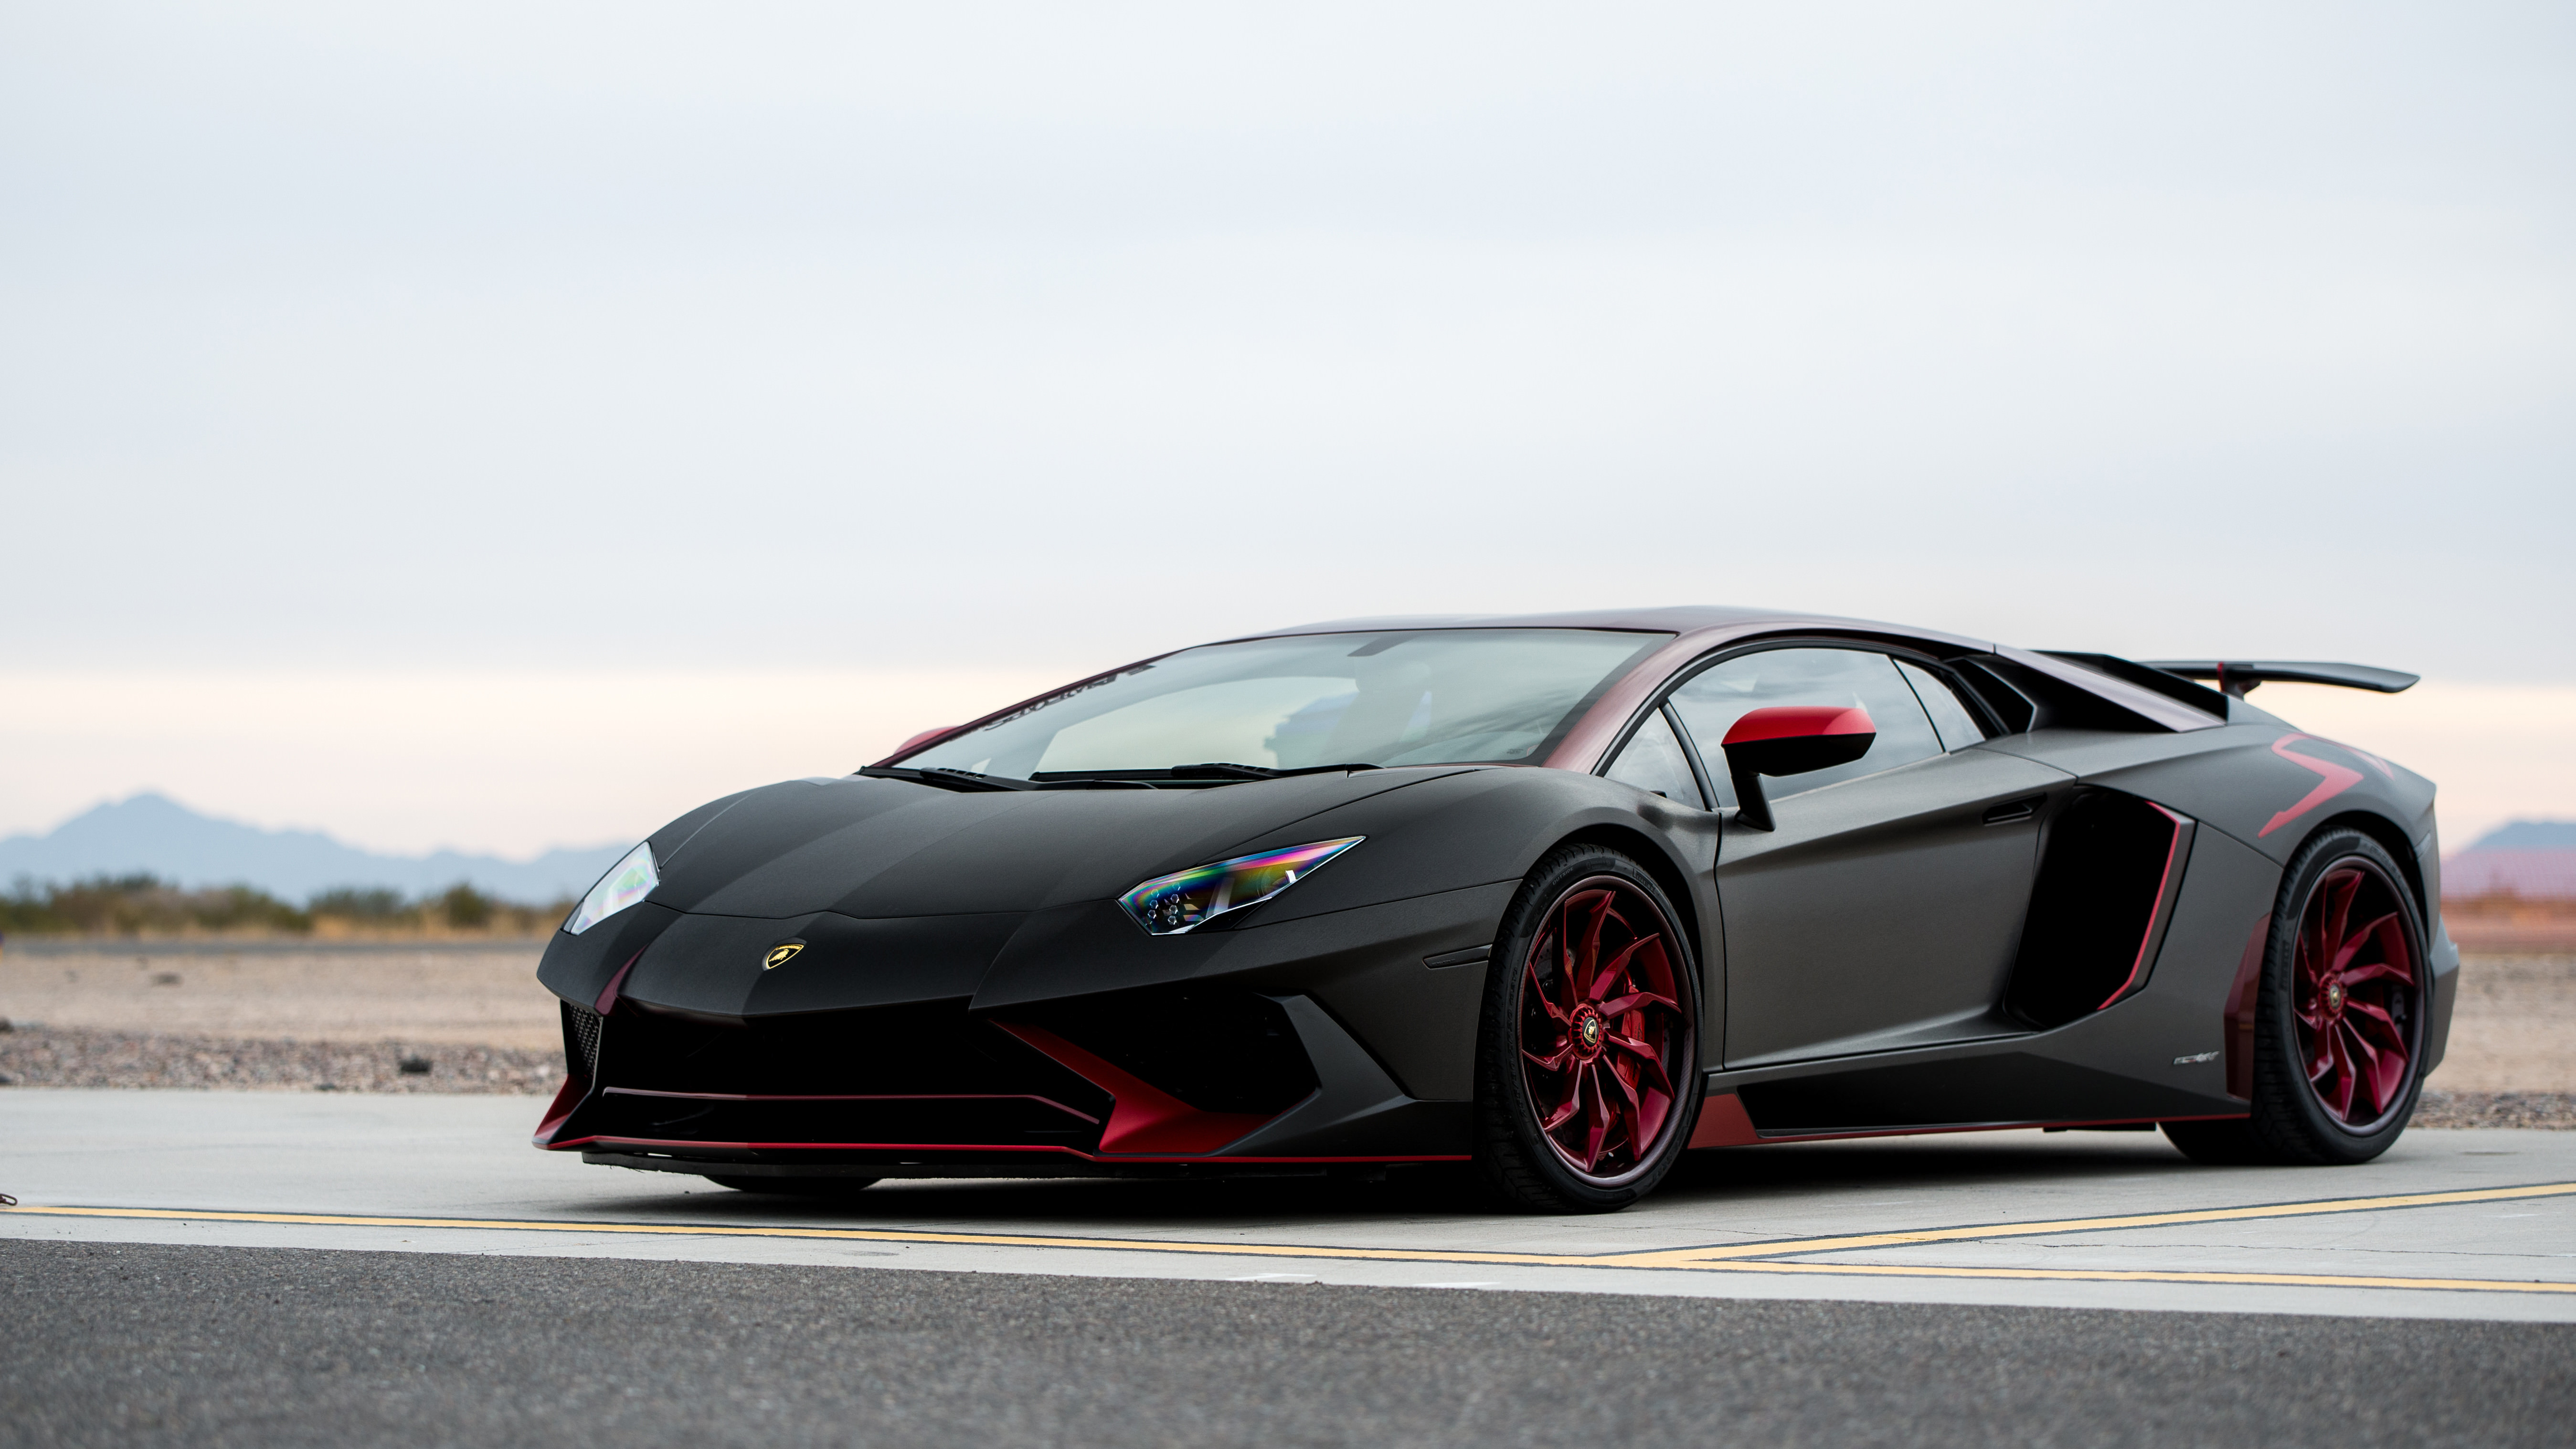 Lamborghini Aventador Sv 4k Hd Cars 4k Wallpapers Images Backgrounds Photos And Pictures